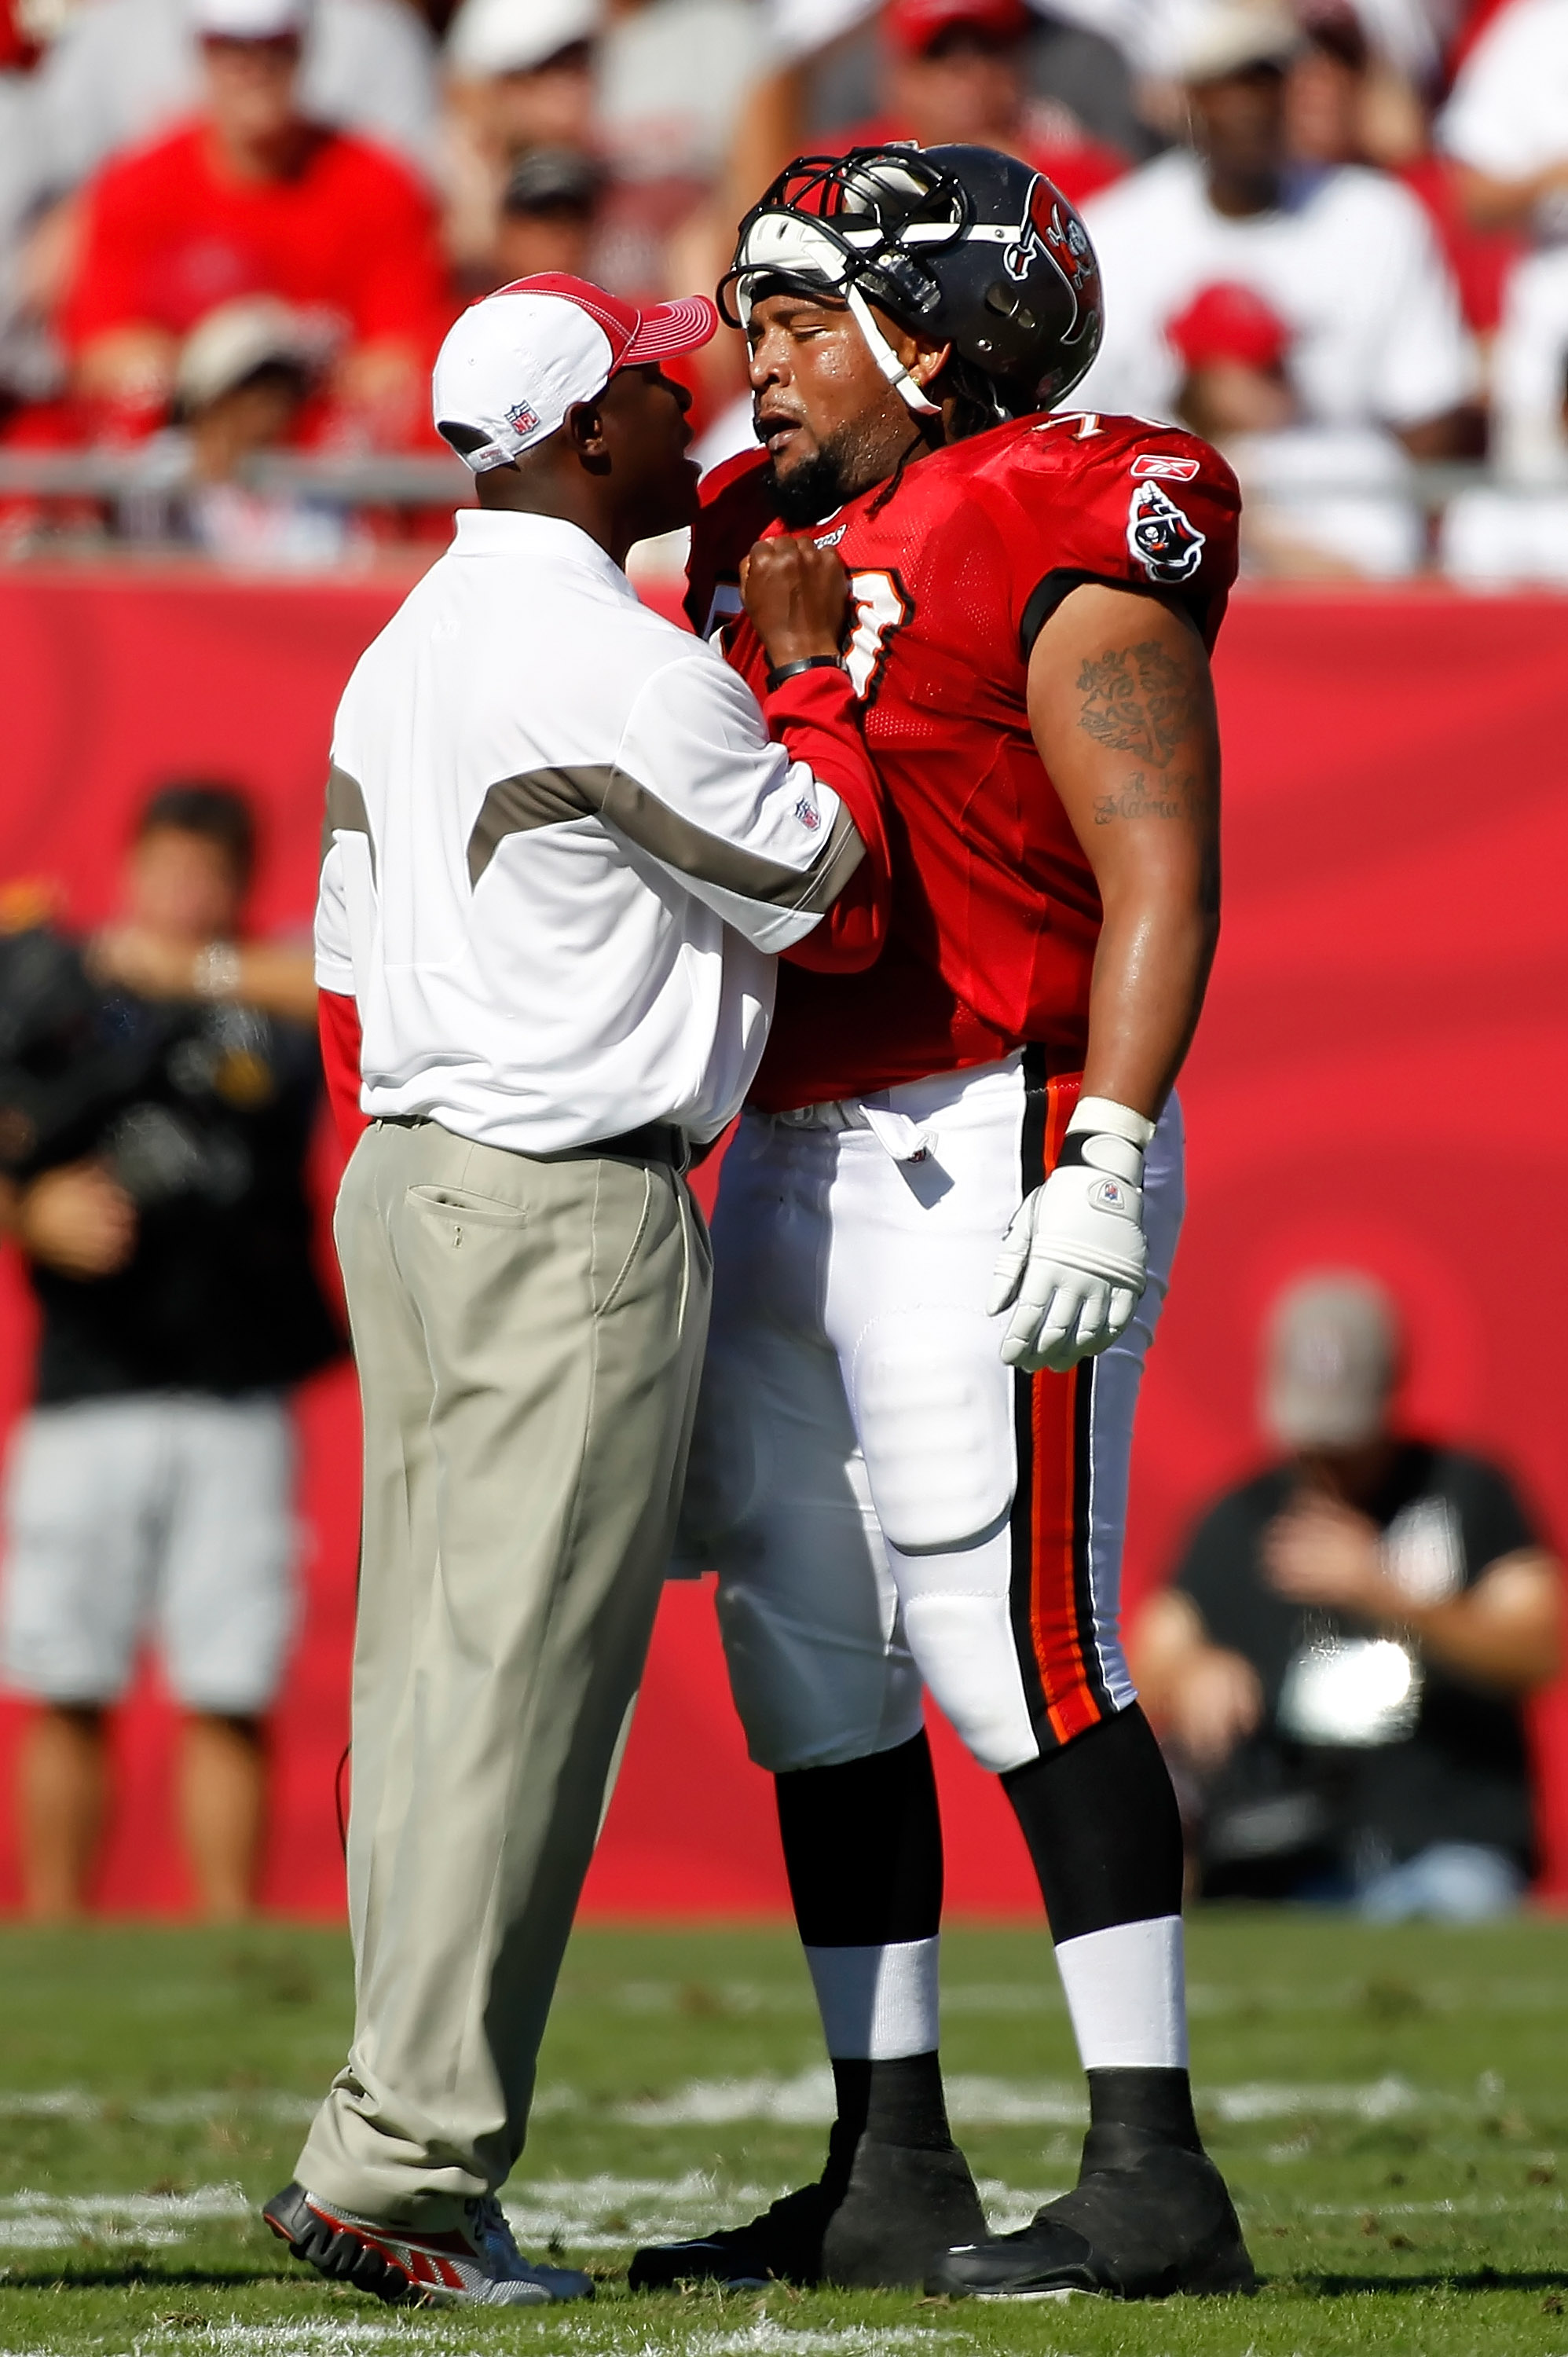 TAMPA, FL - NOVEMBER 14:  Head coach Raheem Morris of the Tampa Bay Buccaneers has some words for offensive lineman Donald Penn #70 during the game against the Carolina Panthers at Raymond James Stadium on November 14, 2010 in Tampa, Florida.  (Photo by J